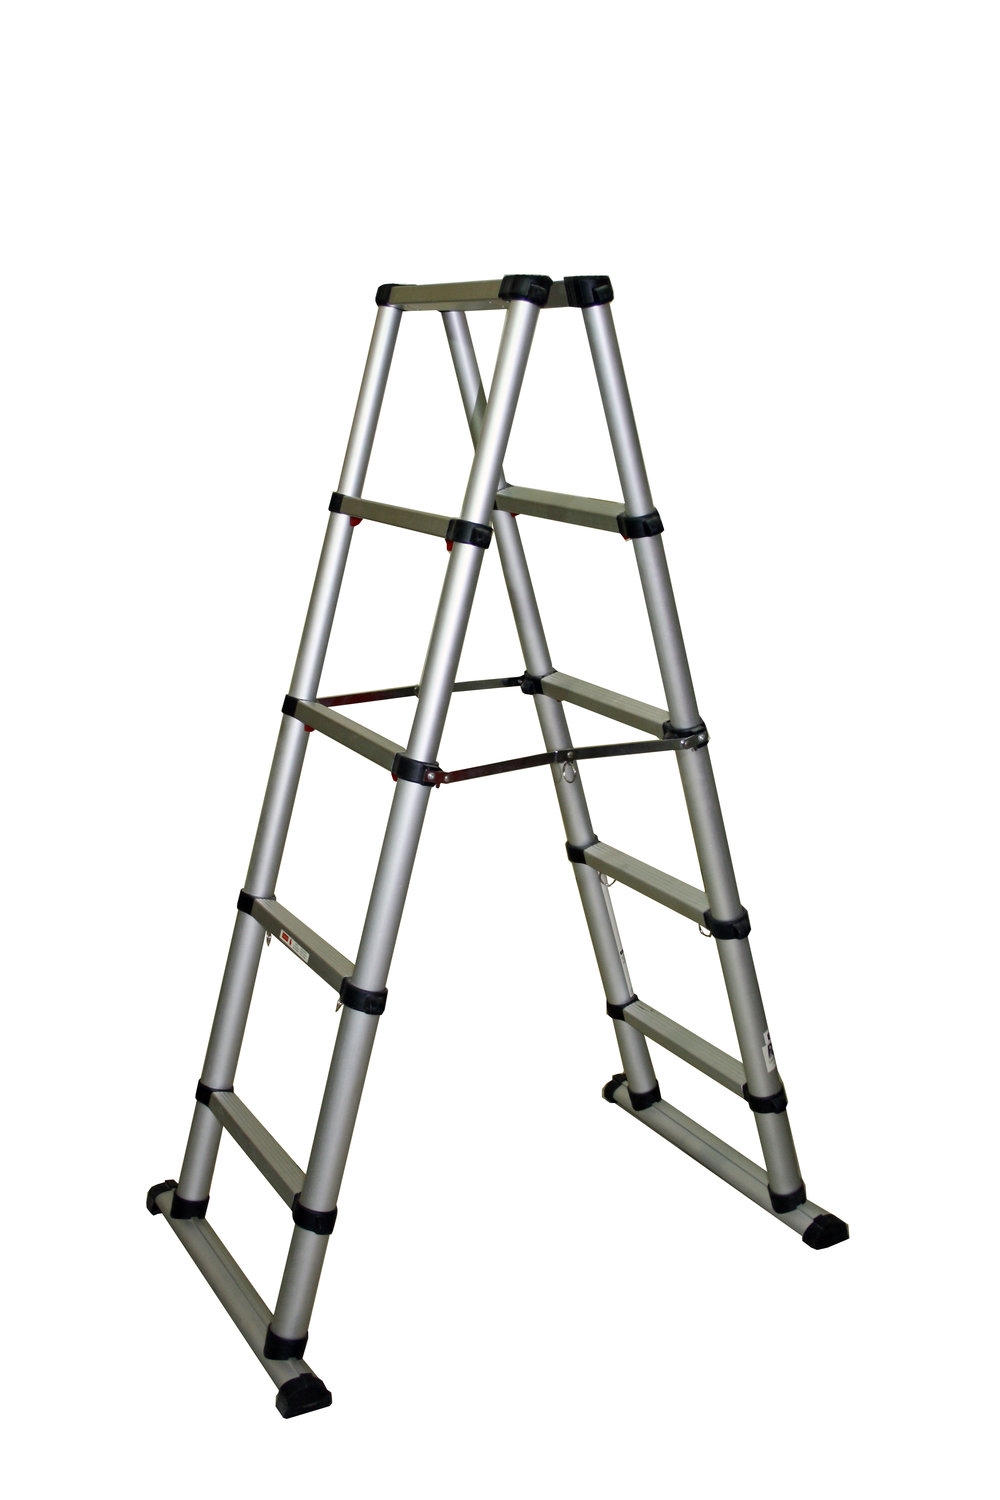 A-type-Telescopic Ladder.jpg